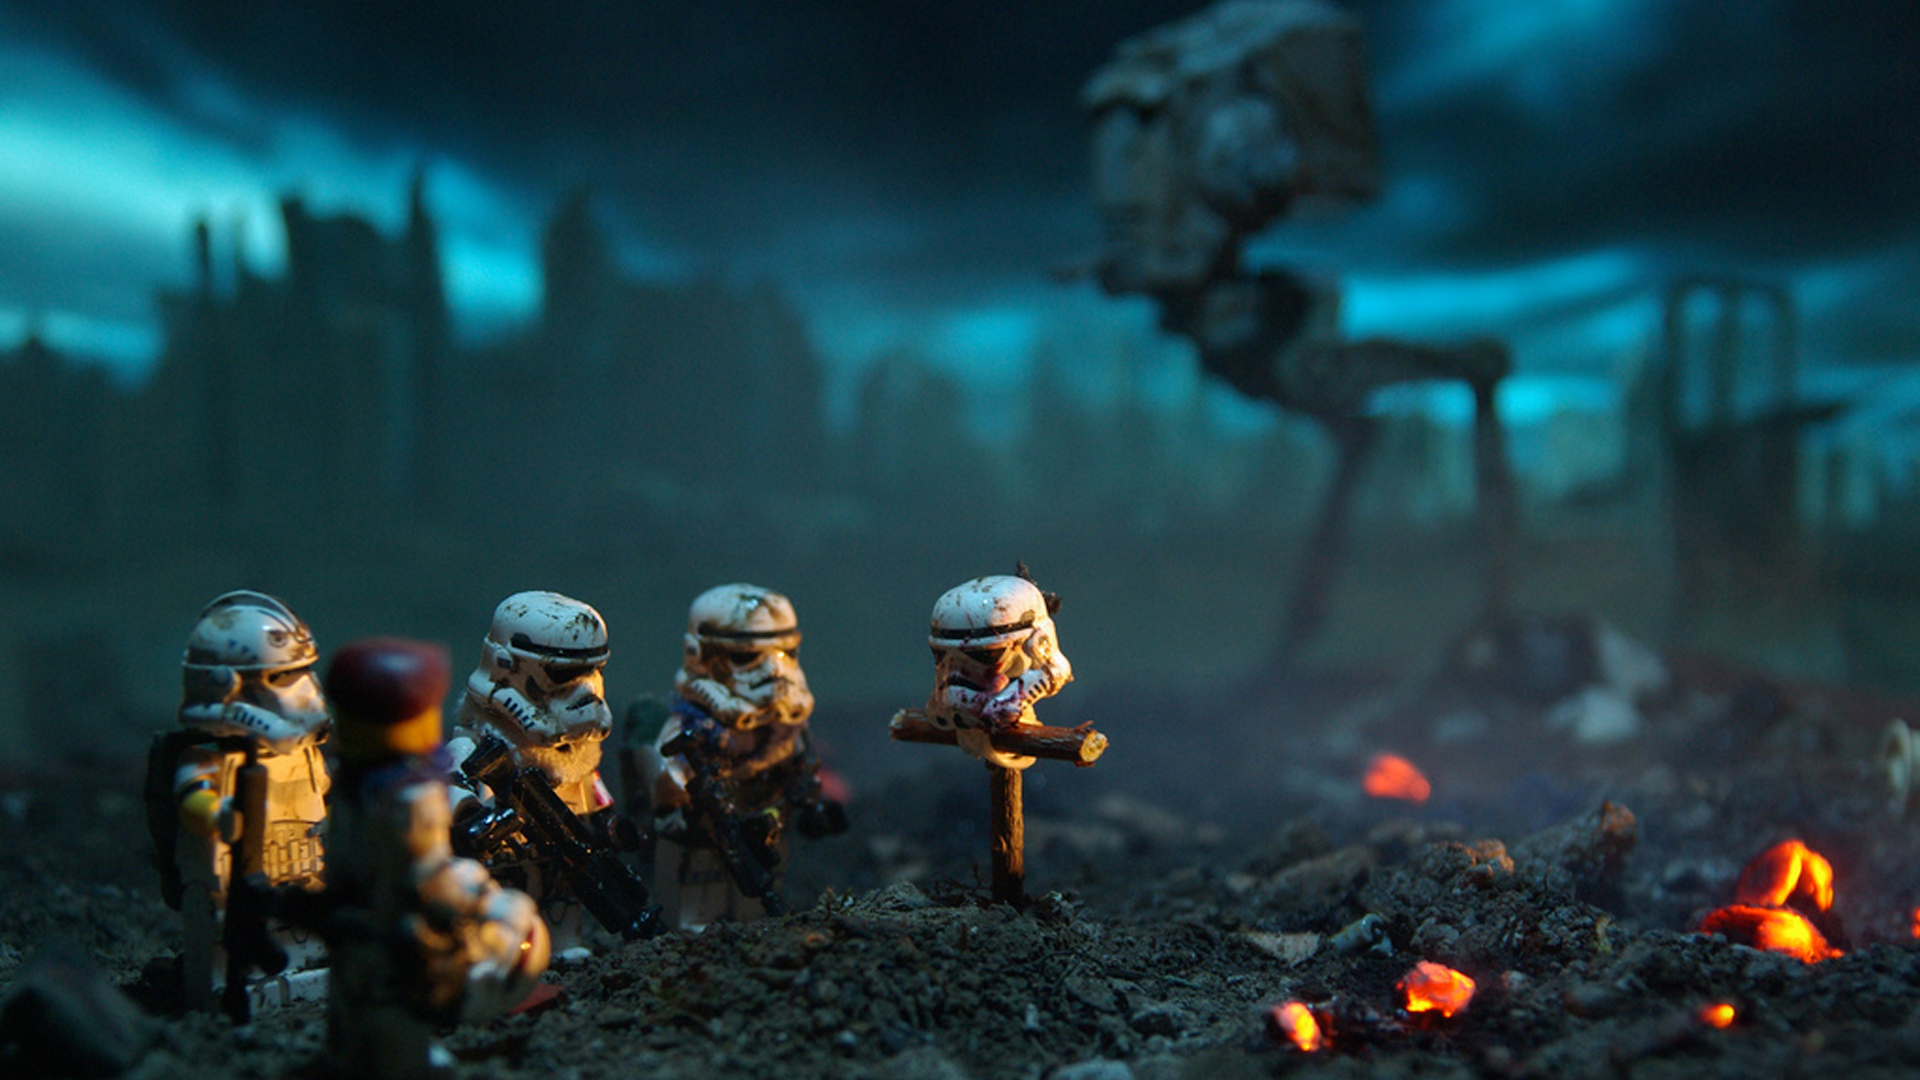 Lego Star Wars Stormtroopers Wallpapers HD Wallpapers 1920x1080